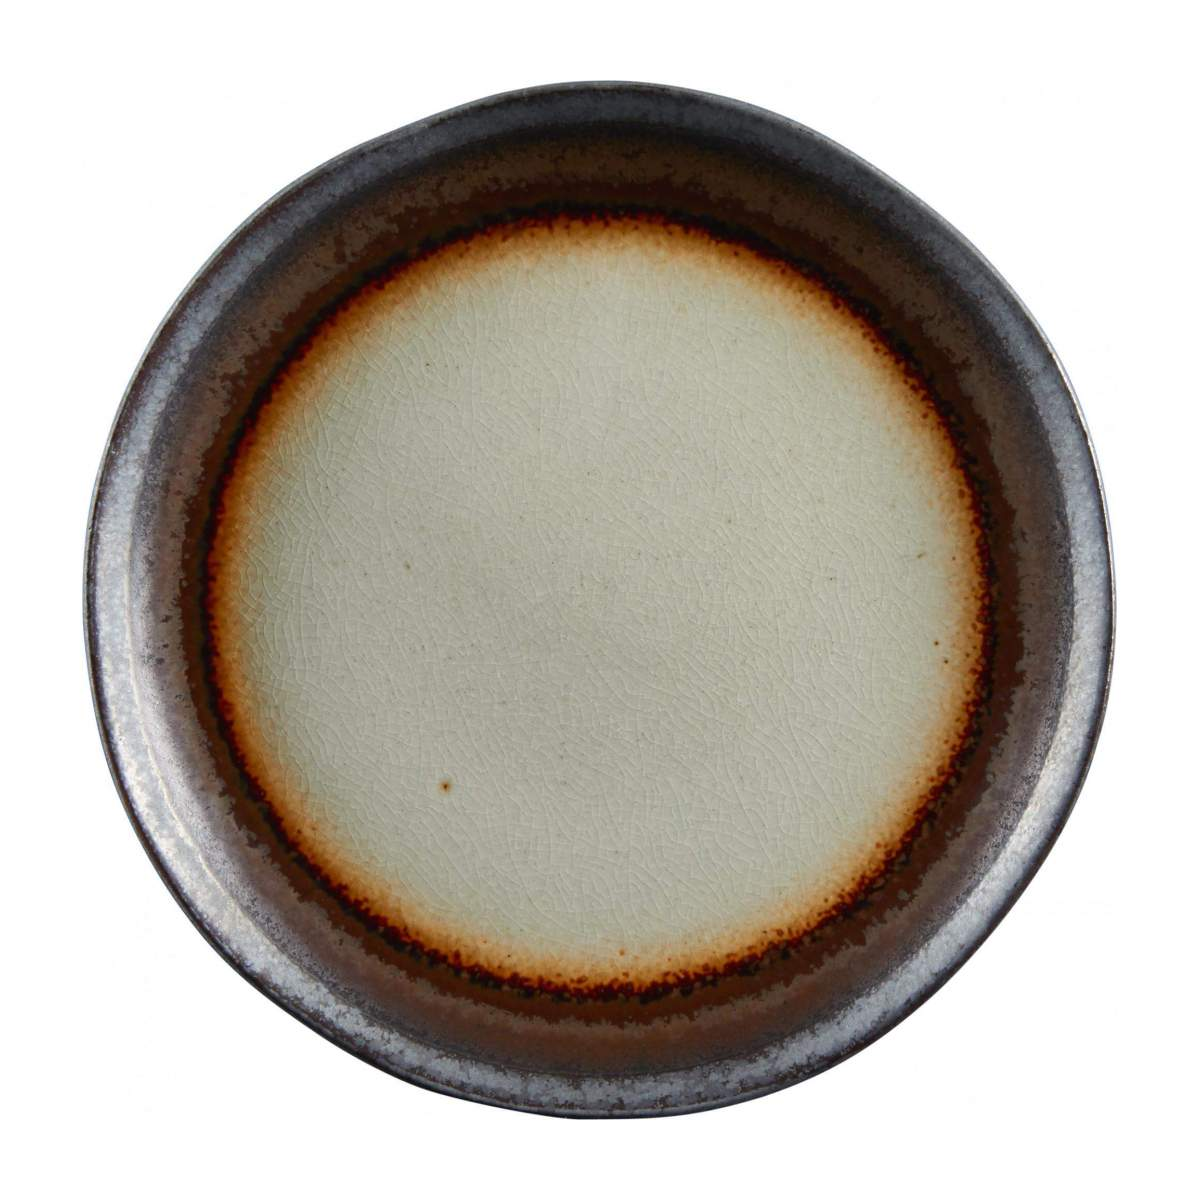 Dessert plate made of sandstone 22cm, grey and brown n°1